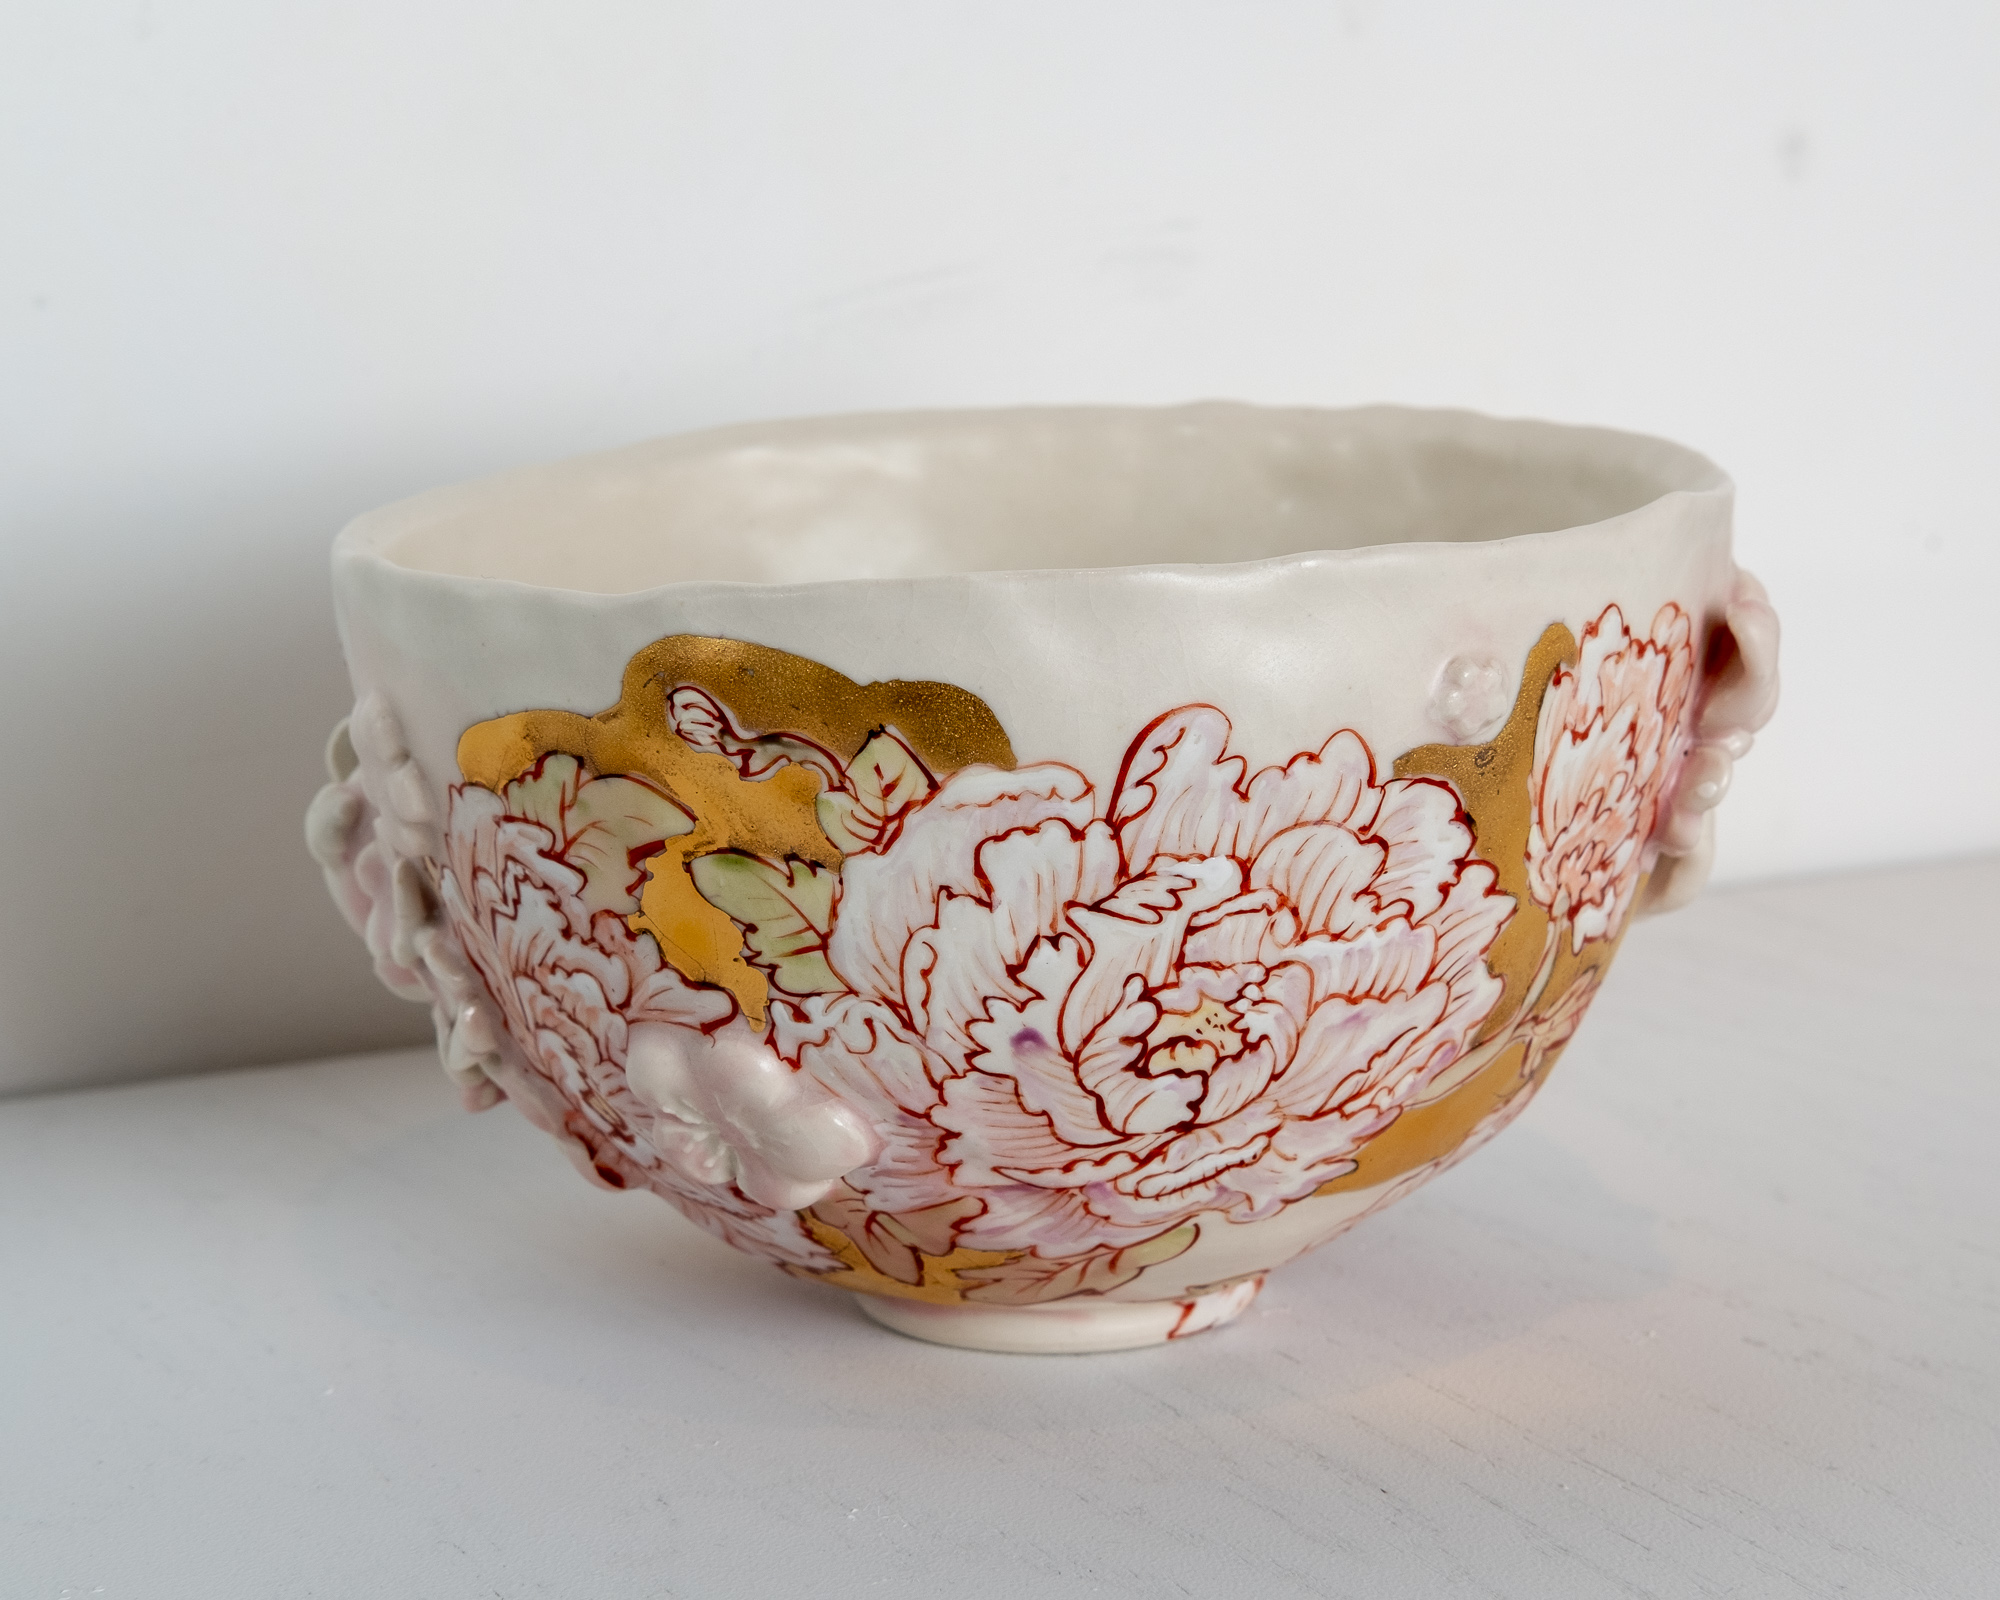 Peonies Teabowl  H andbuilt porcelain with hand-molded sprigs, glaze, overglaze drawing, raised Kutani enamels, gold  6 x 6 x 6 inches VZI 013G